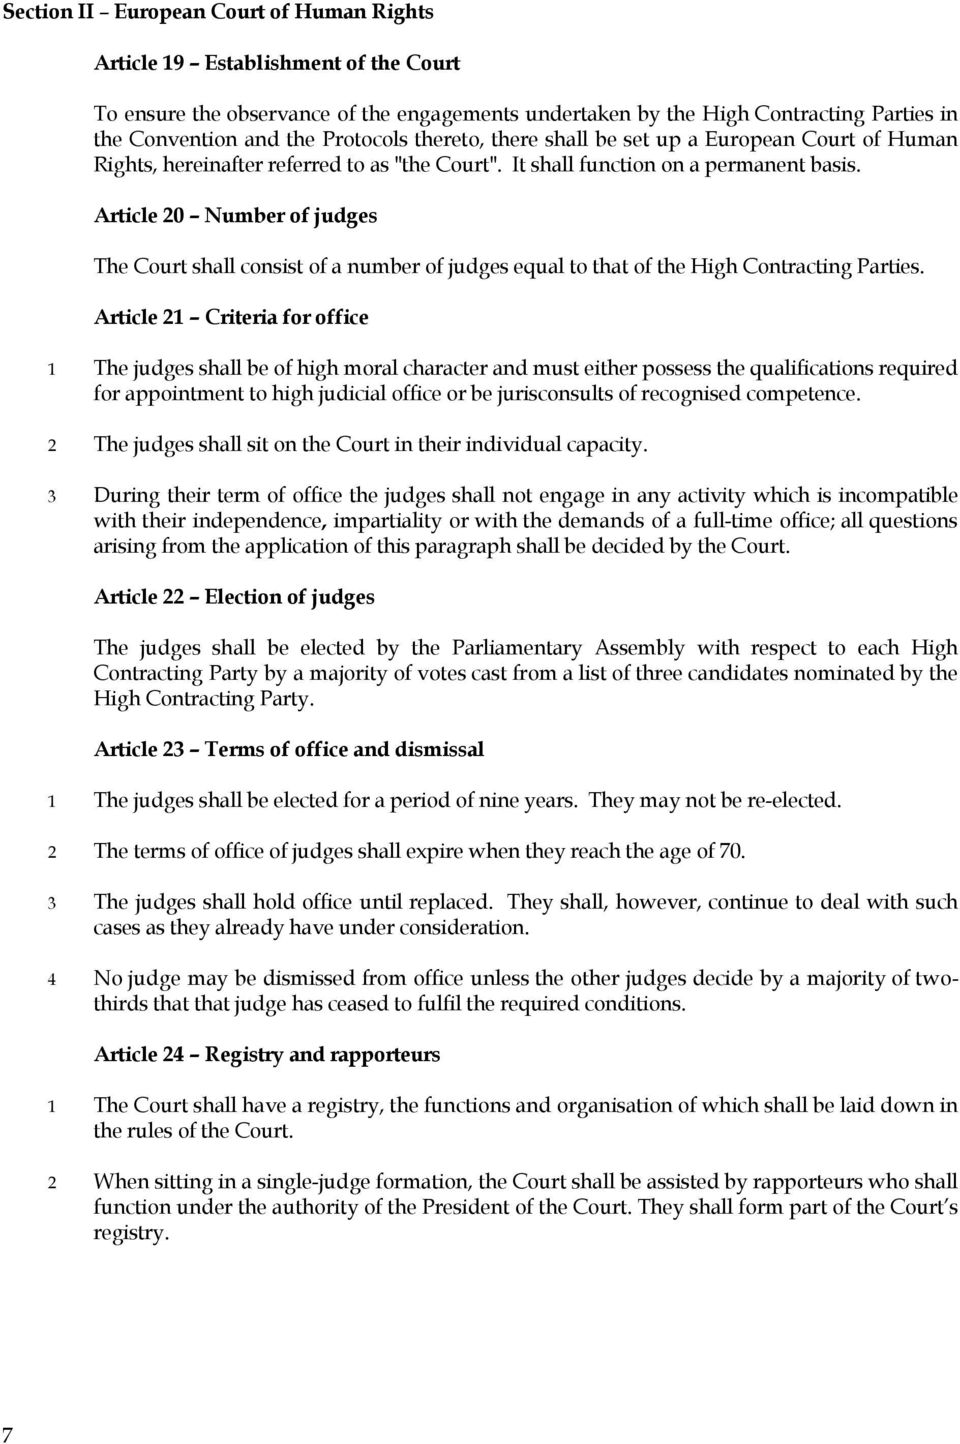 Article 20 Numer of judges The Court shll consist of numer of judges equl to tht of the High Contrcting Prties.